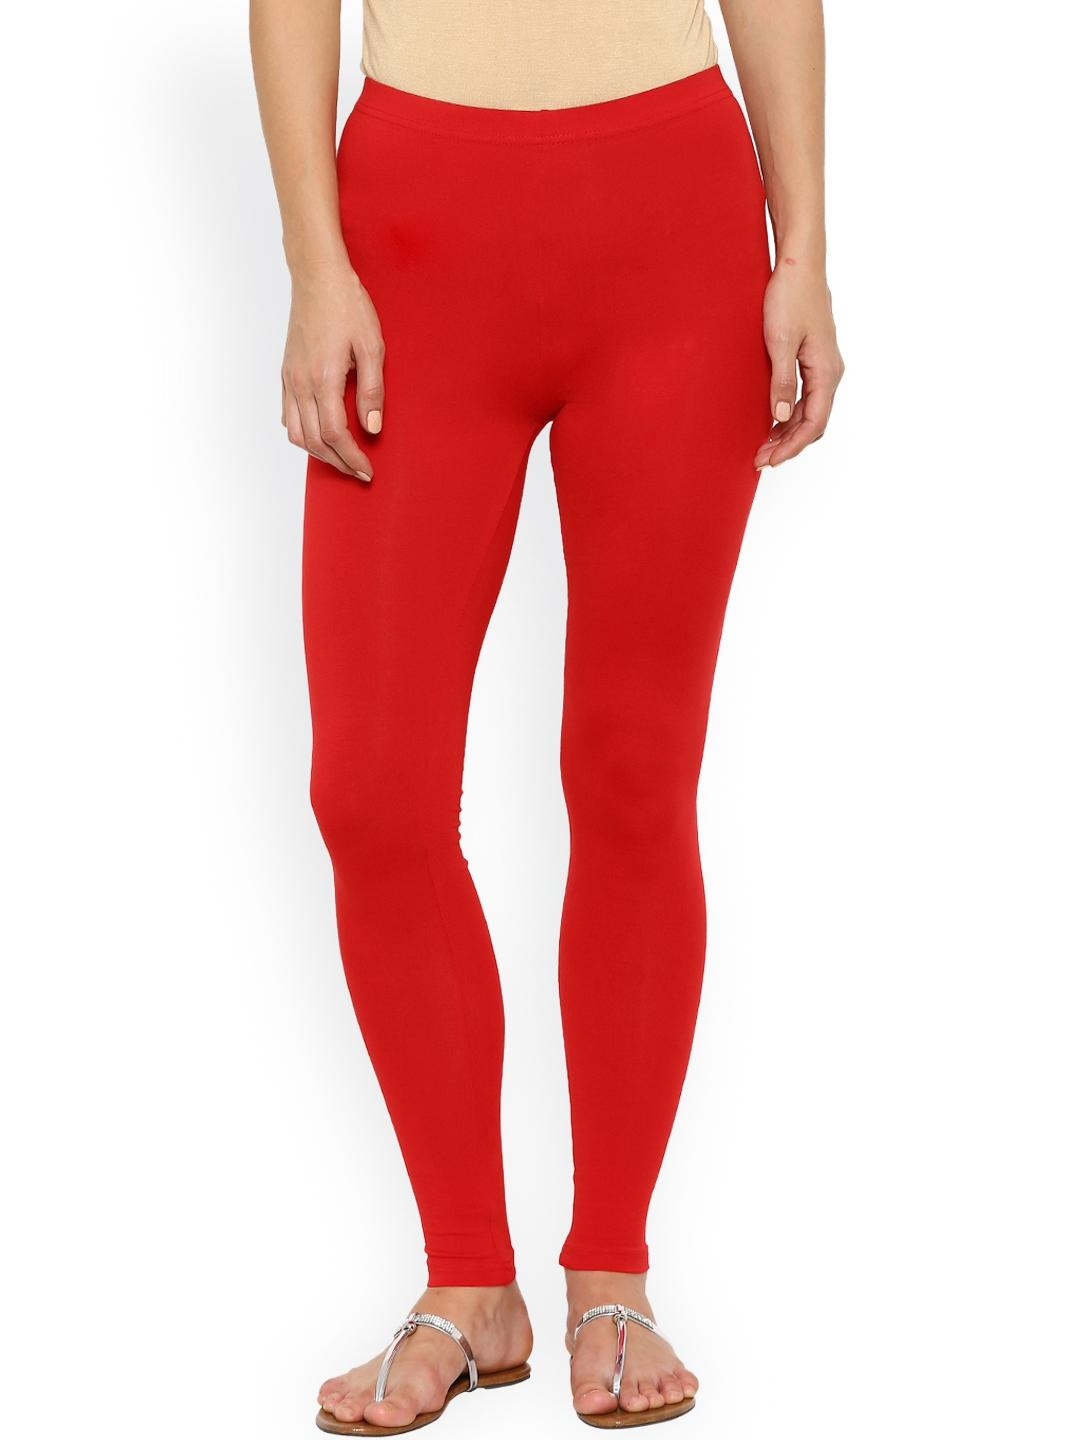 Red Viscose Tights for Women KTY-T245